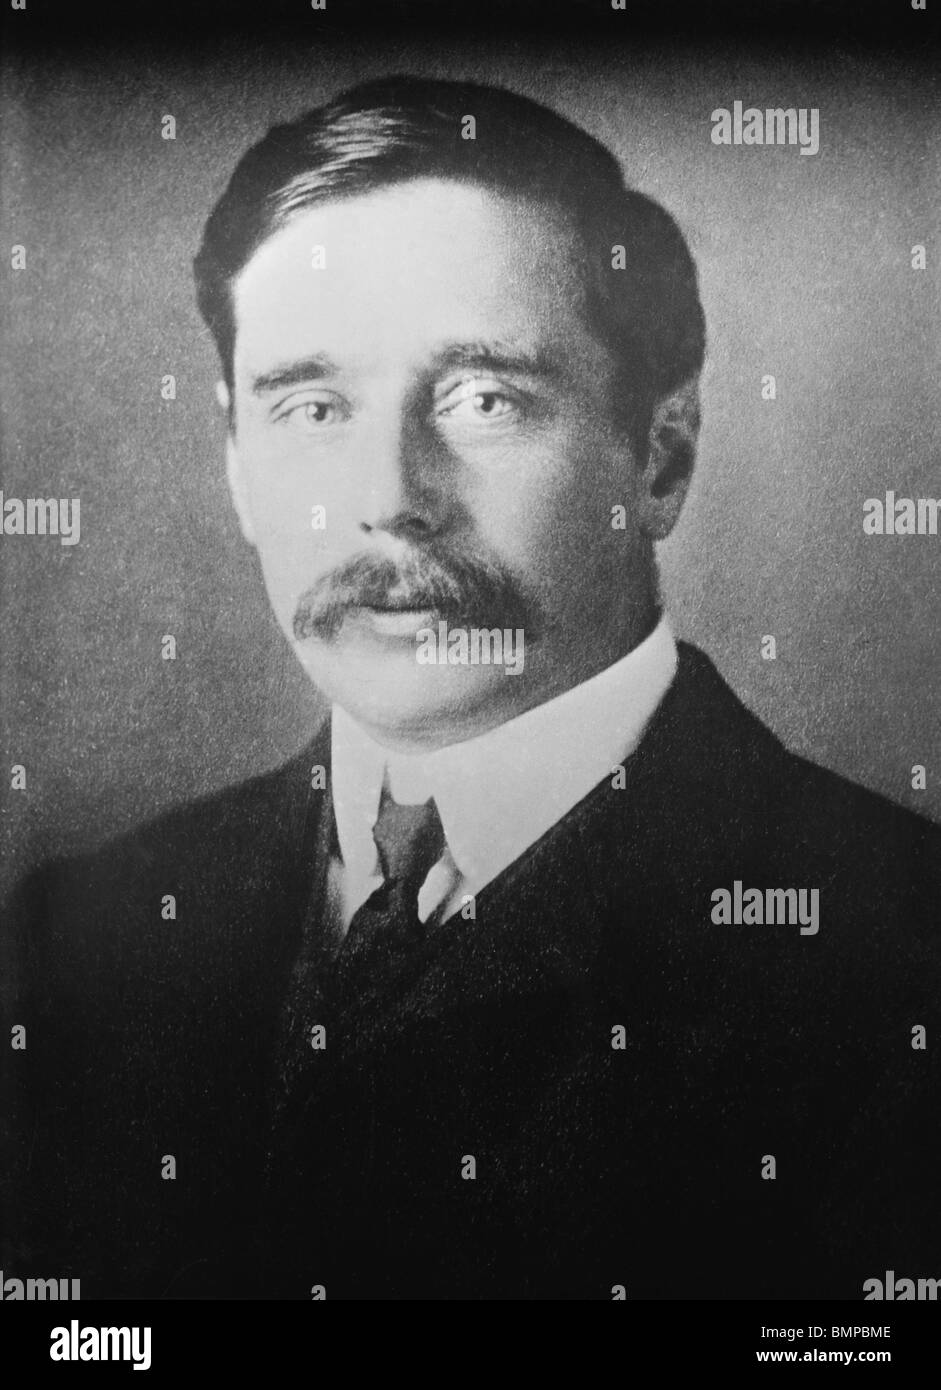 Undated portrait photo of H G (Herbert George) Wells (1866 -1946) - author of The Time Machine and The War of the - Stock Image